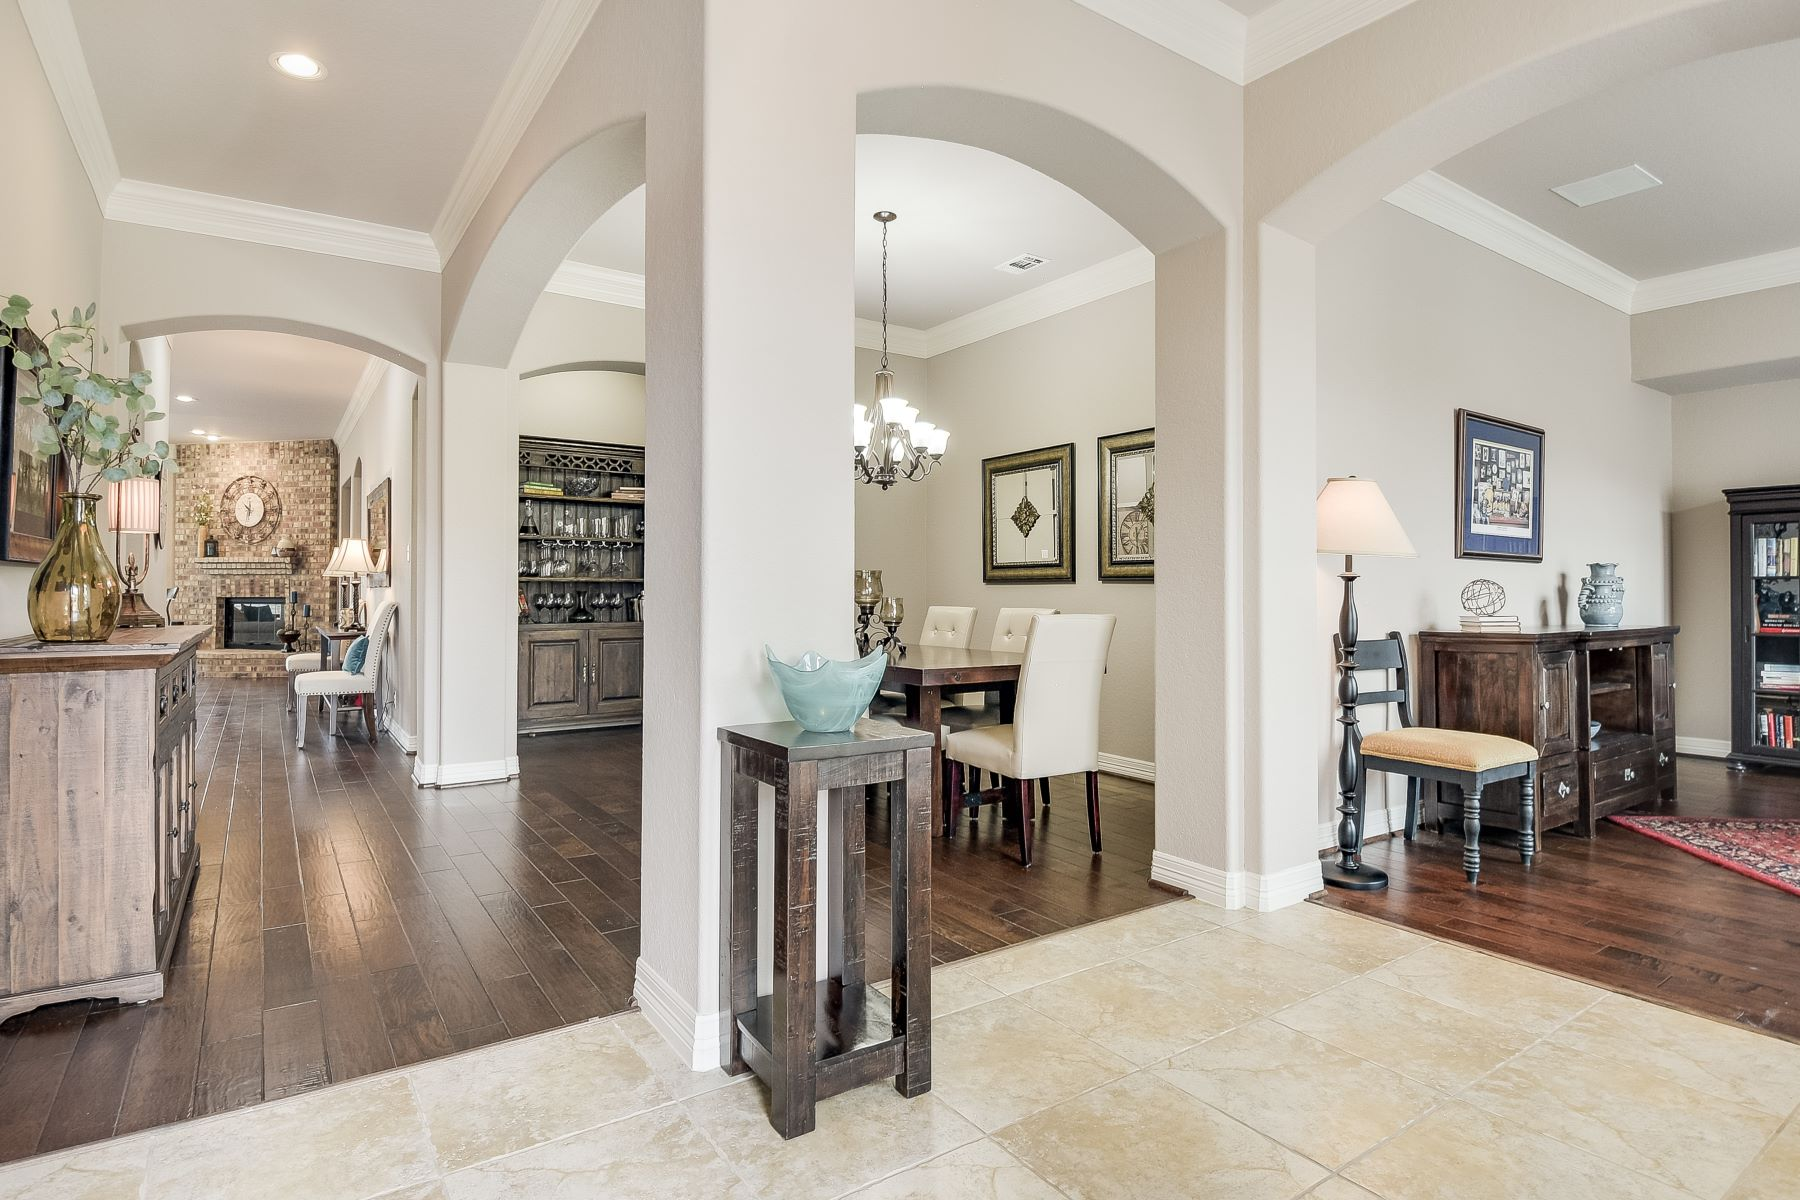 Additional photo for property listing at Immaculate One Story Home 7903 Hermosa Hill San Antonio, Texas 78256 United States